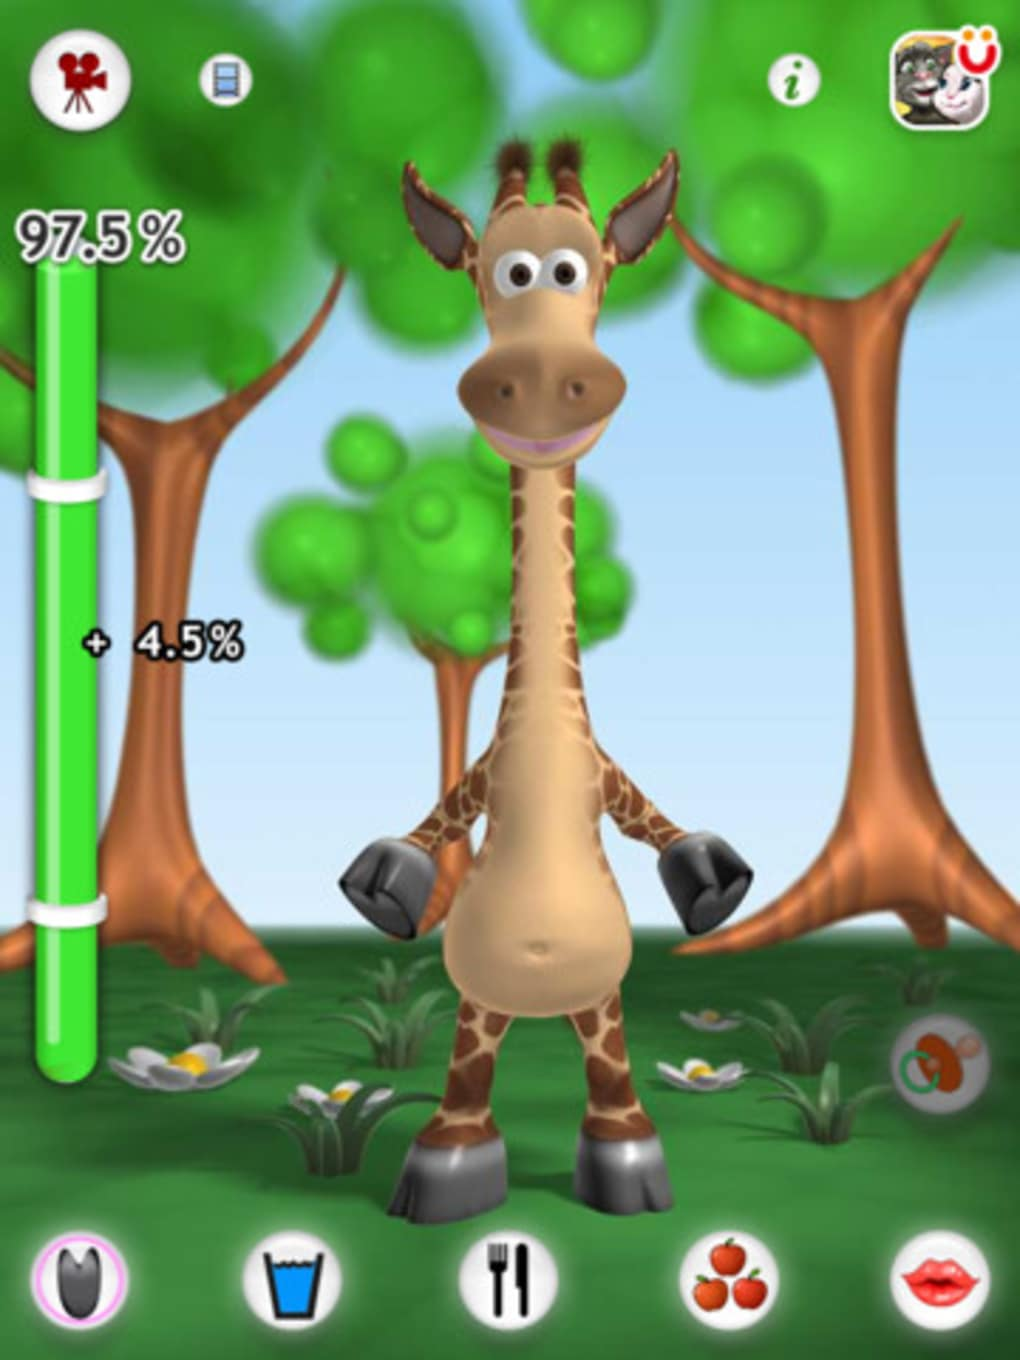 Talking gina the giraffe for ipad for iphone download.